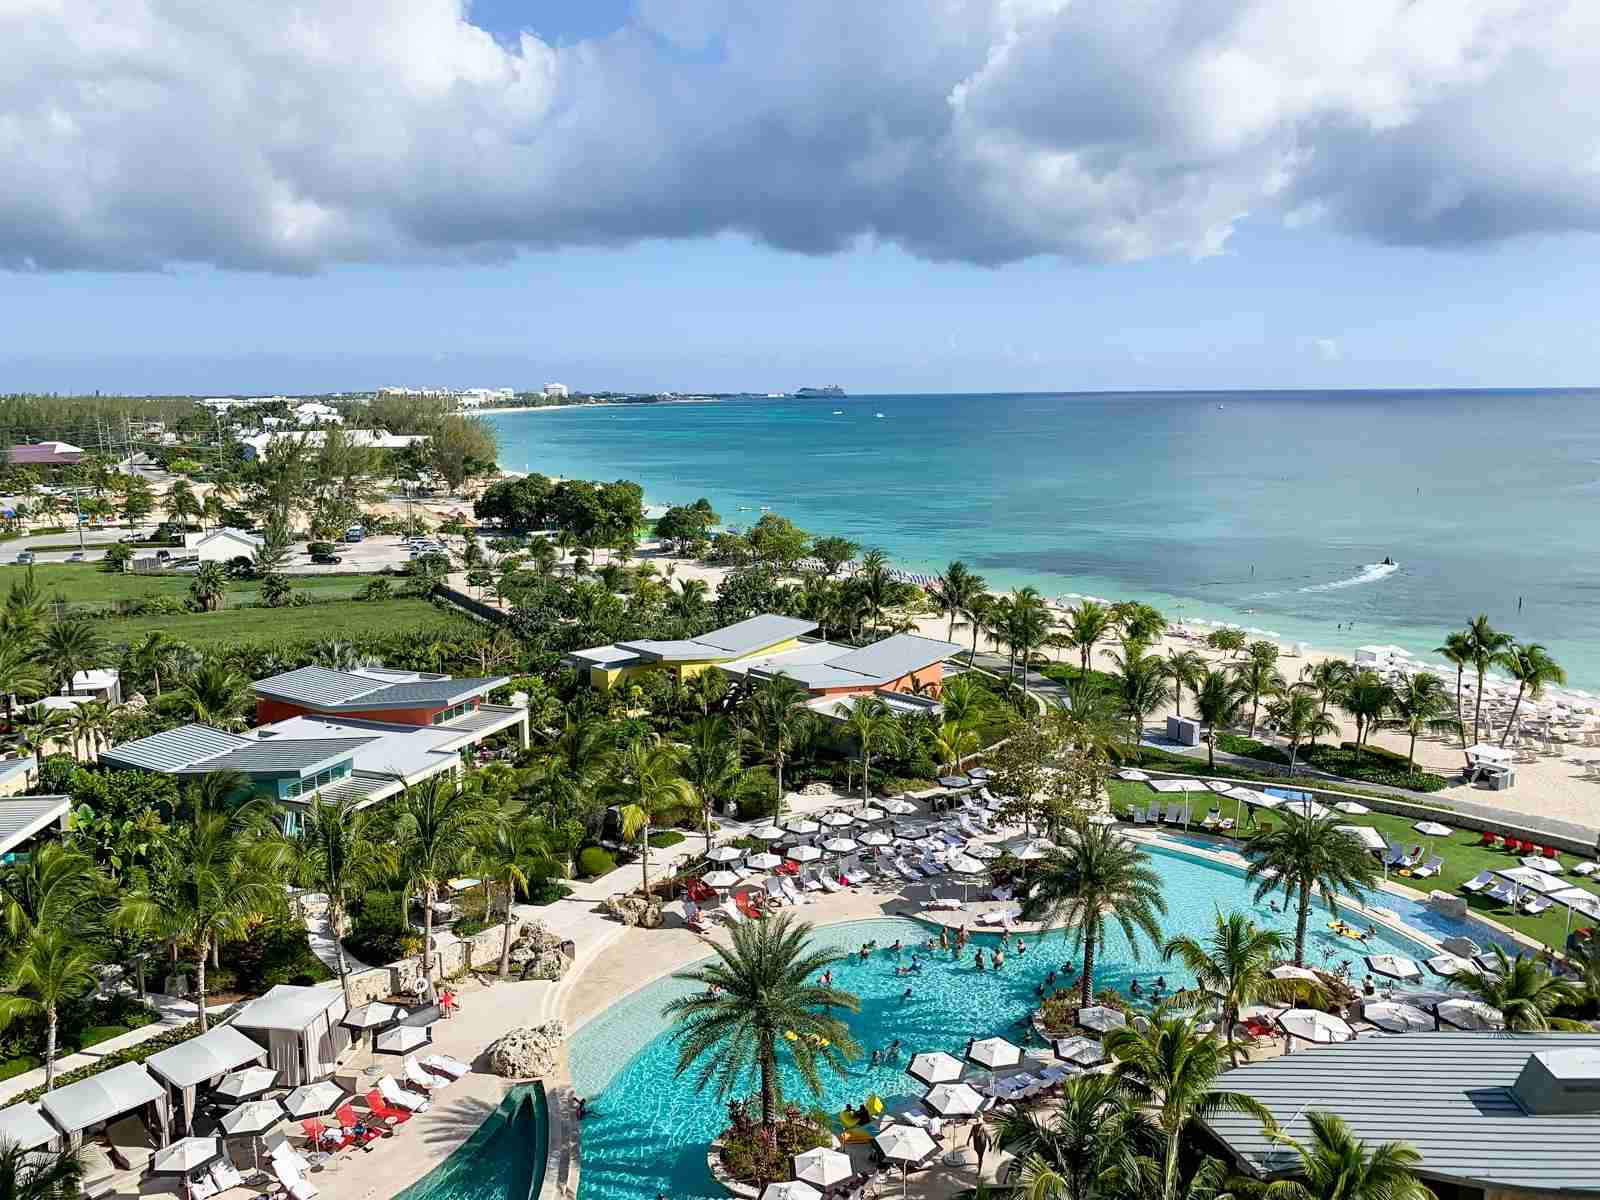 Kimtpon Seafire Resort on Grand Cayman (Photo by Scott Mayerowitz/The Points Guy)